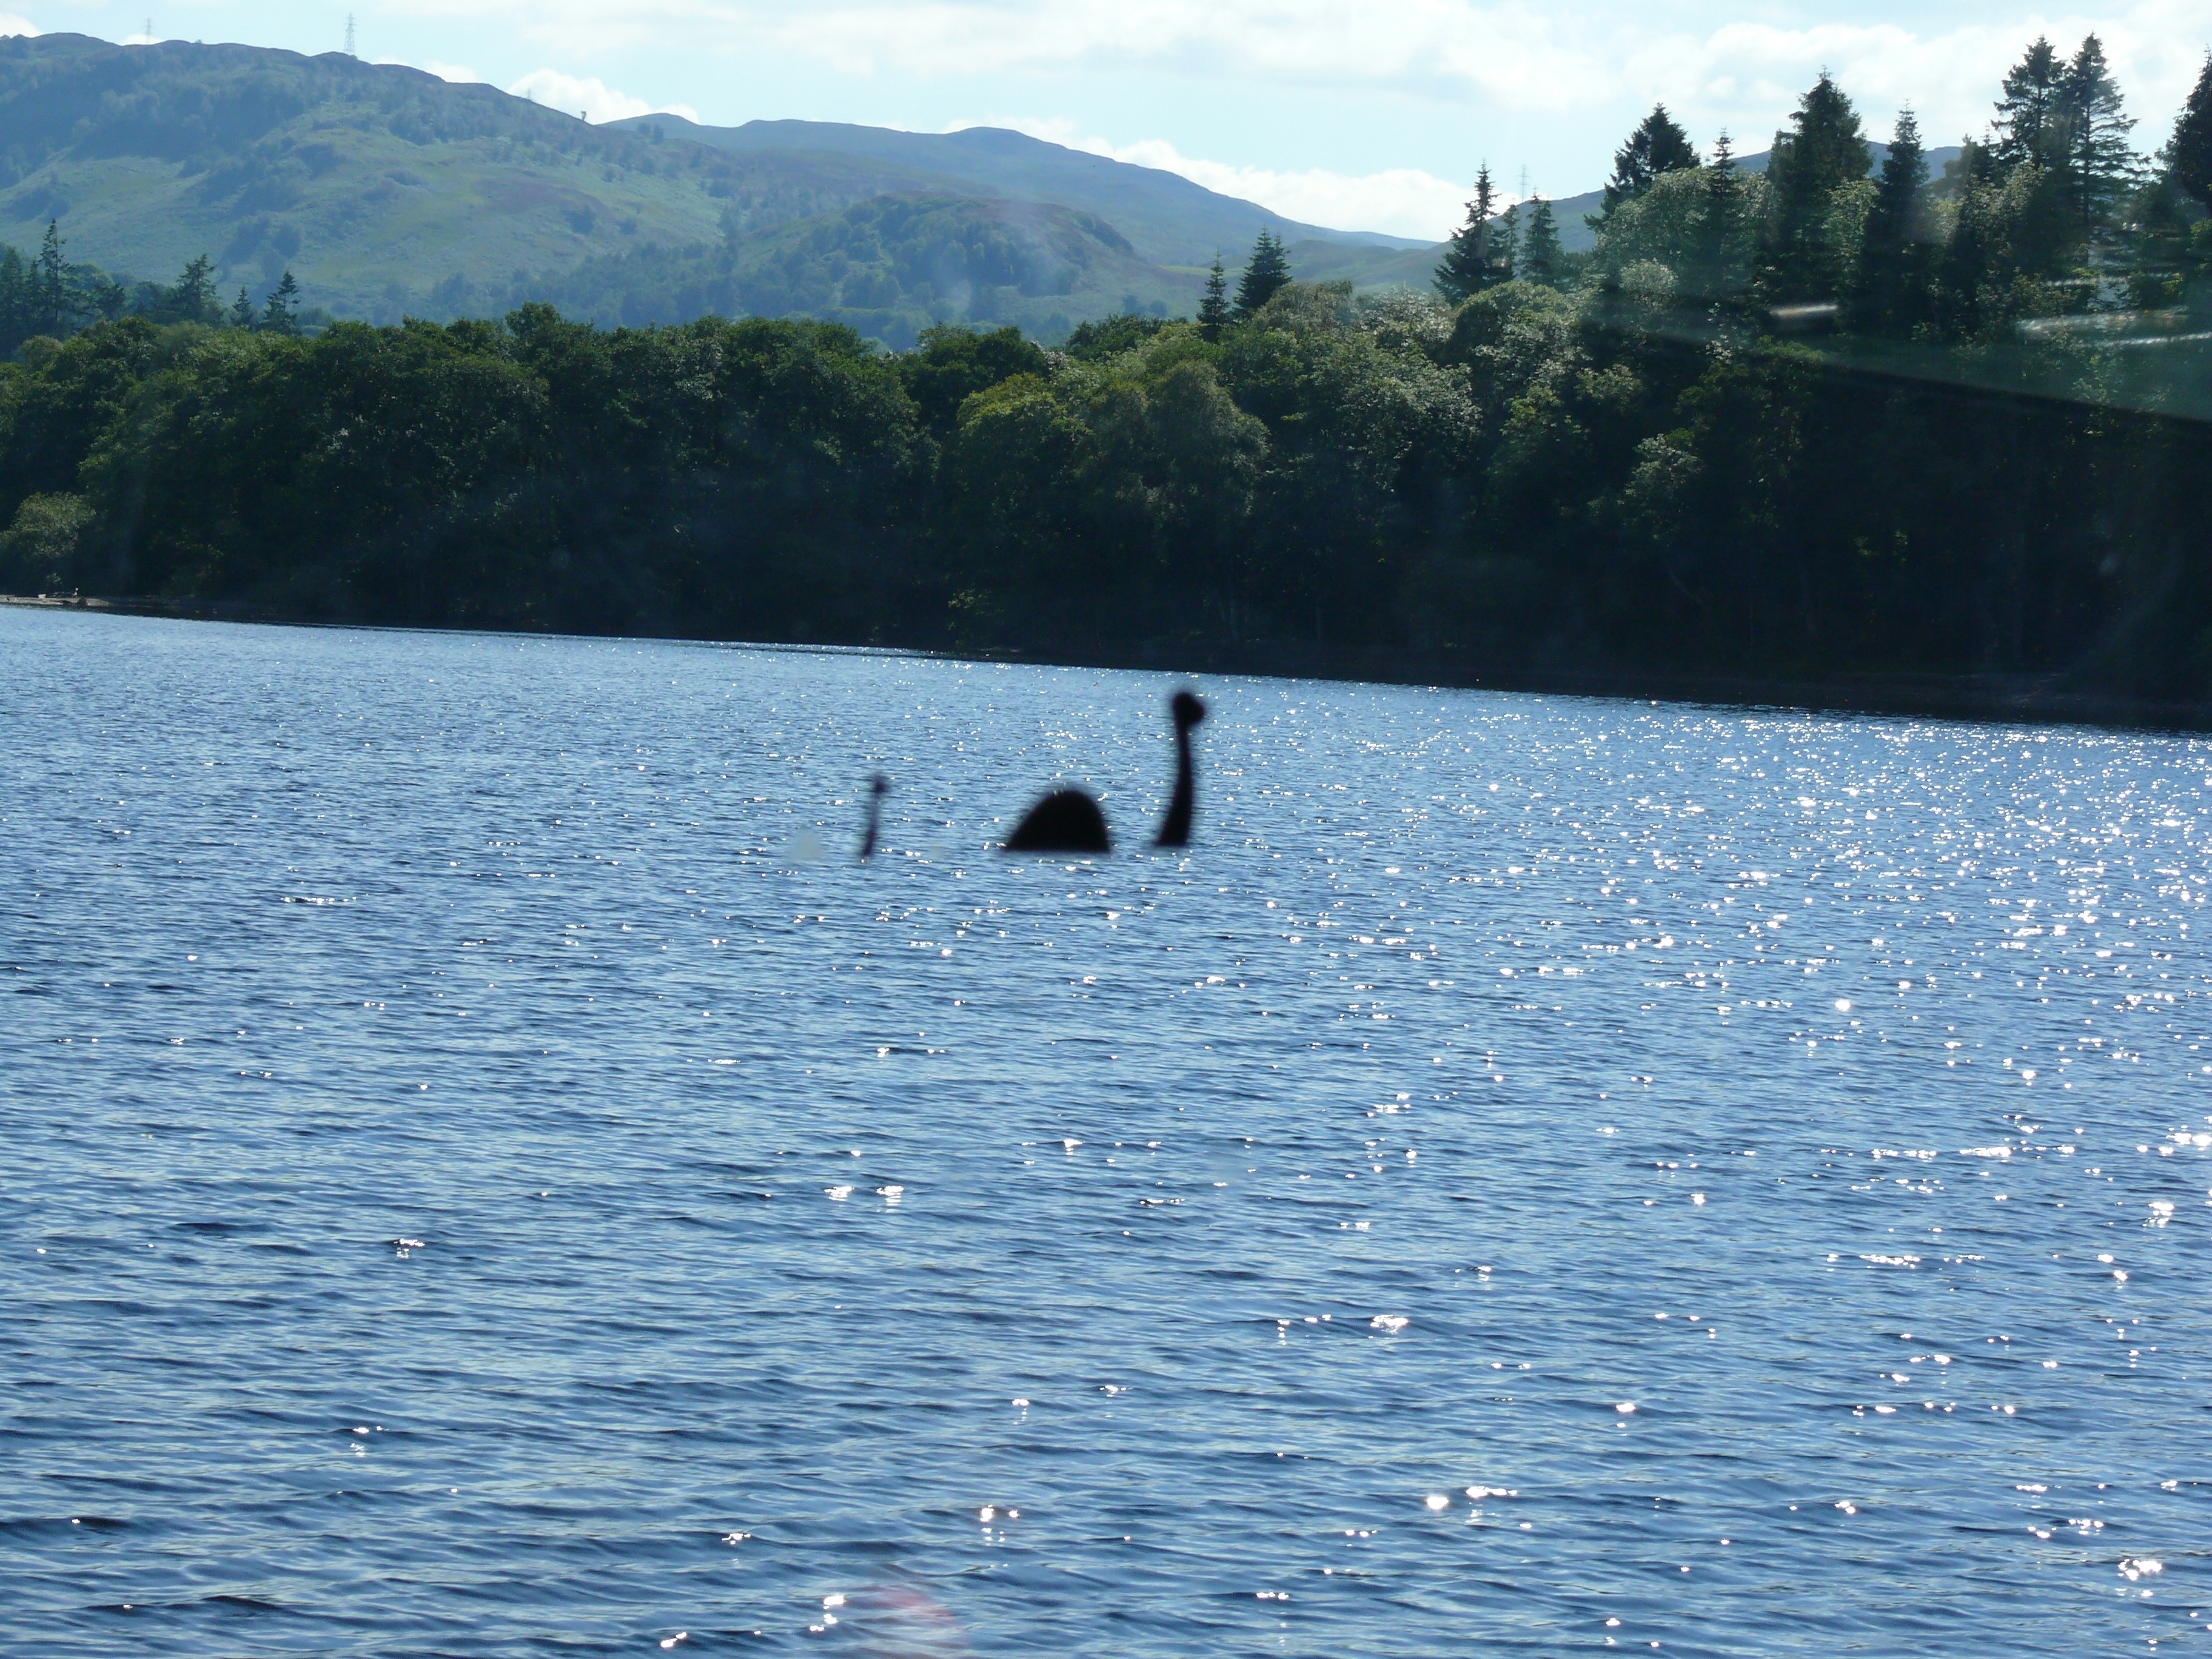 this test could settle the loch ness monster mystery once and for all